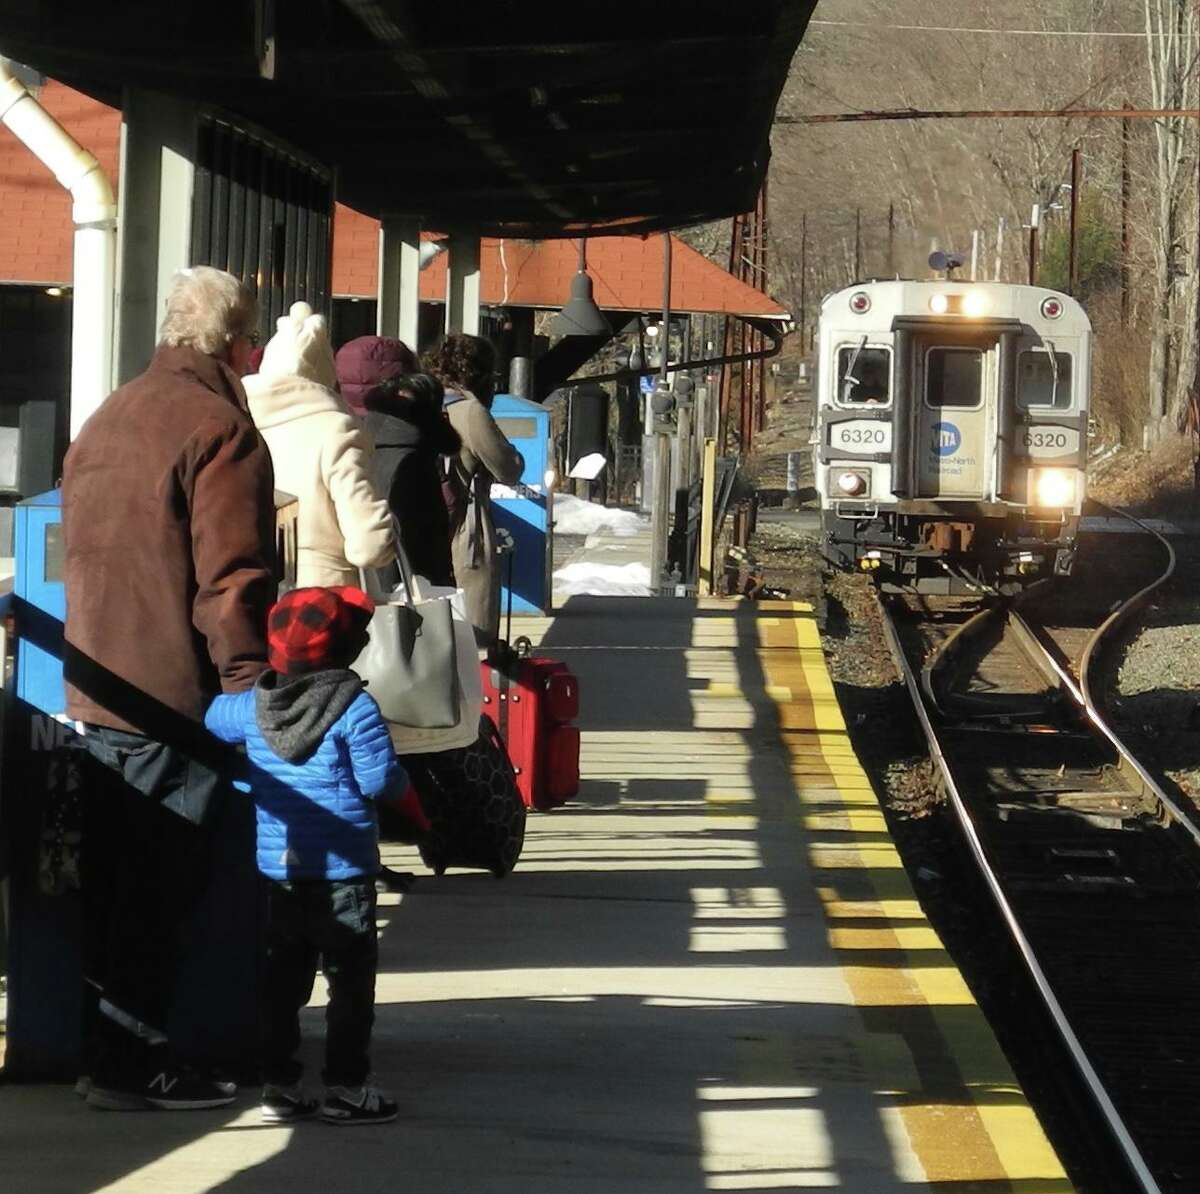 Branchville train station in Ridgefield is on the Danbury Branch line, which is among the operations that would benefit from the addition of new locomotives and cars under the proposed CT 2030 program.